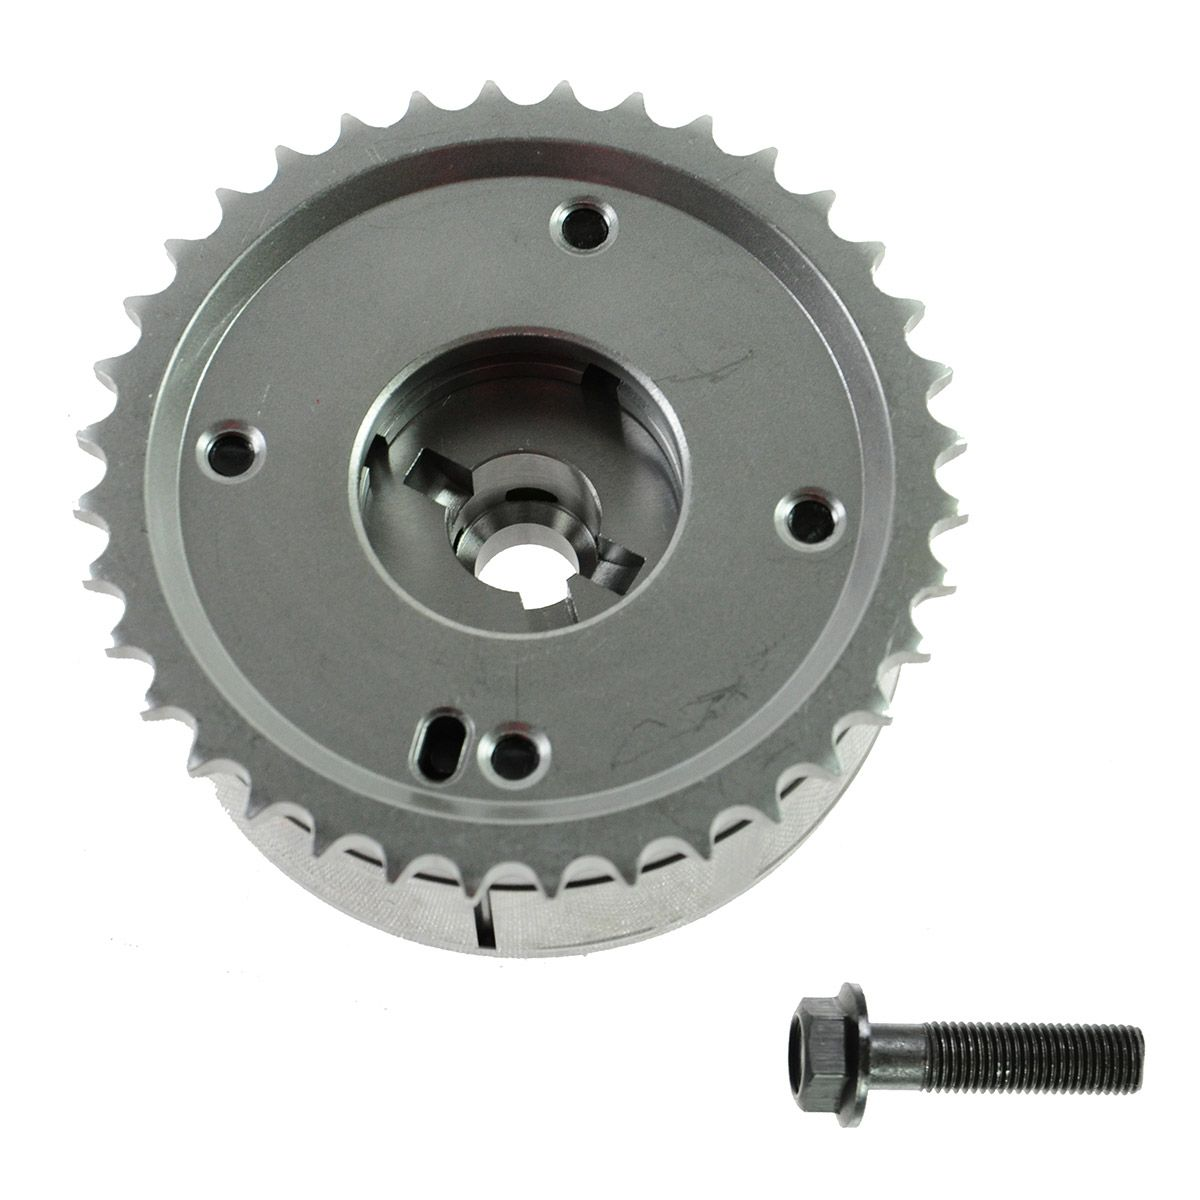 Camshaft VVT Actuator Phaser Sprocket for Scion xD Toyota Corolla 1.8L